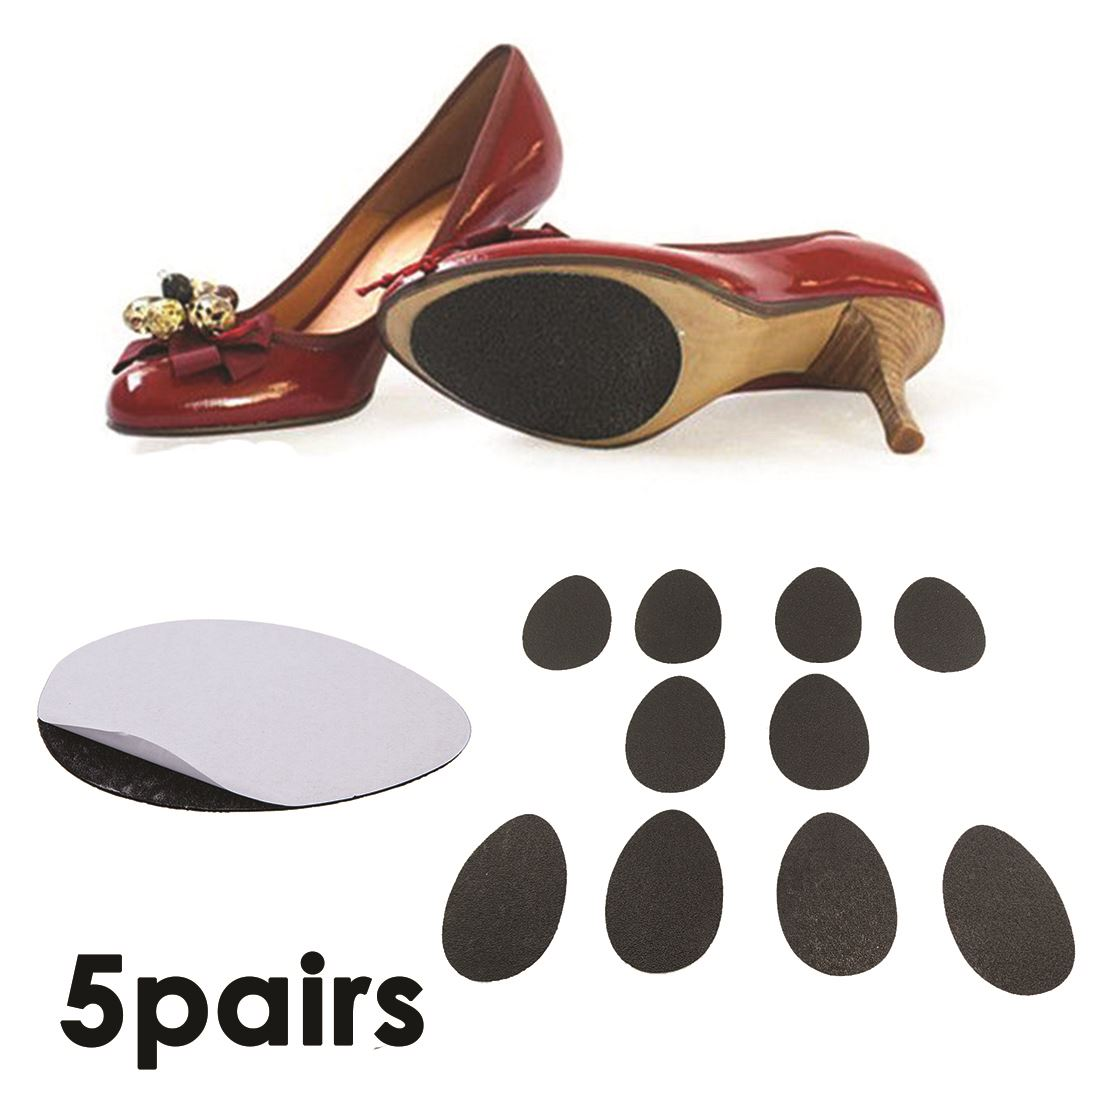 Anti-Slip Stick Shoes Sole Self-adhesive Protector Grip Pad For Ladies High Heel